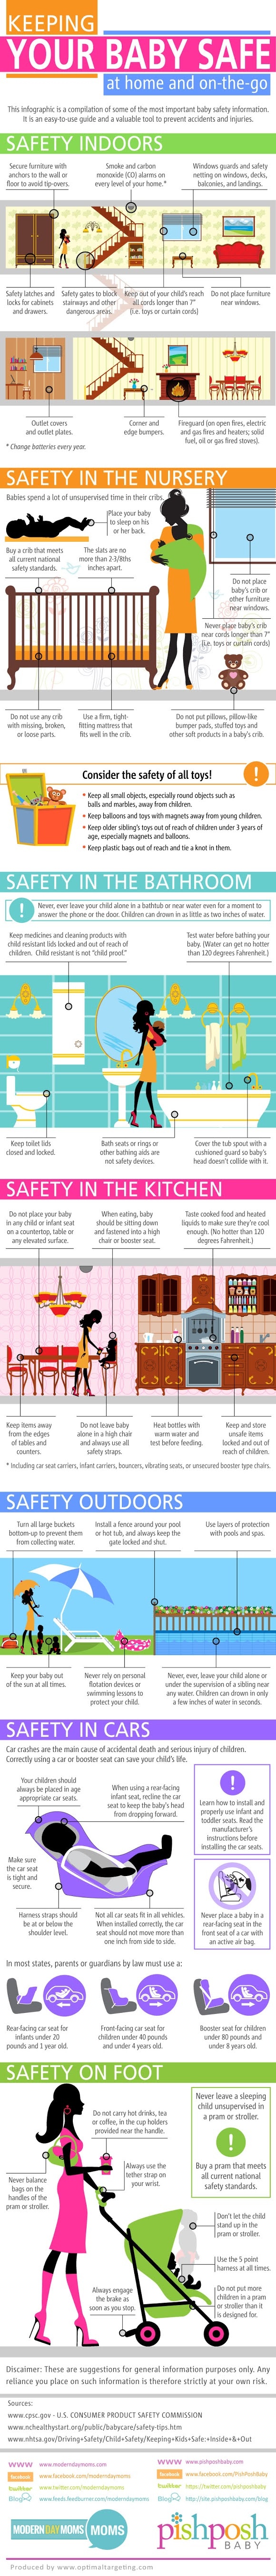 Keeping Your Baby Safe #infographic